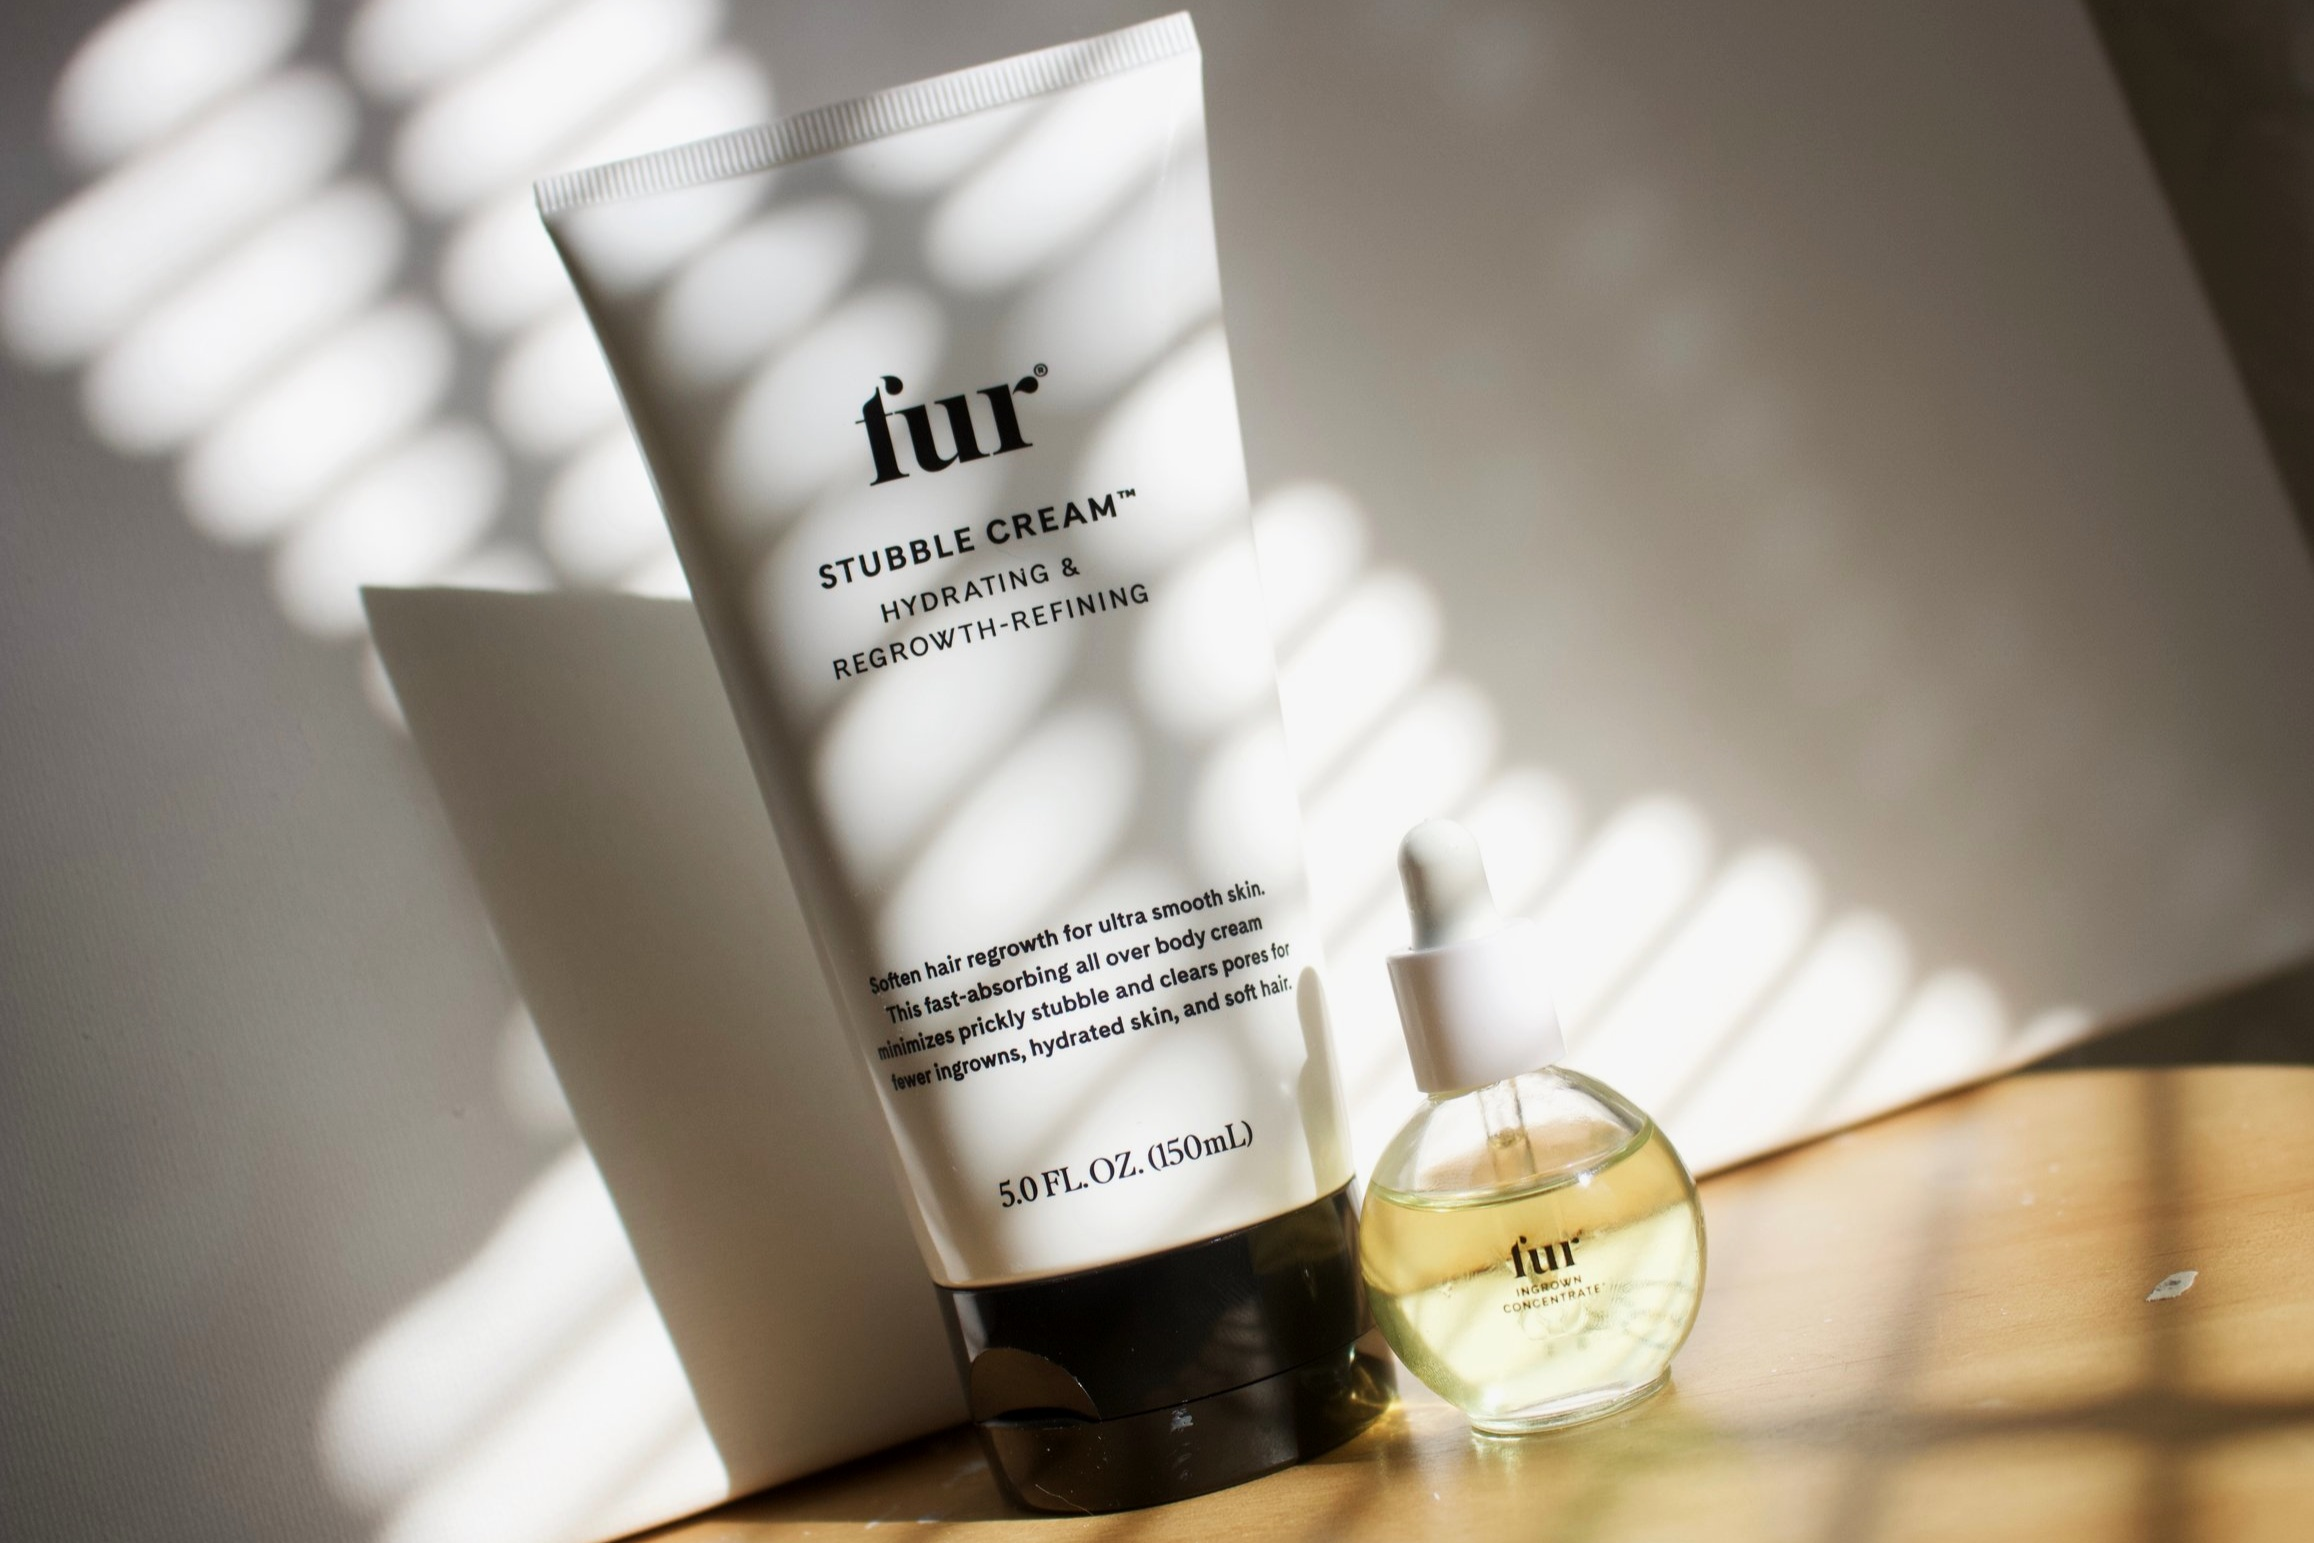 Fur Stubble Cream and Ingrown Concentrate Review